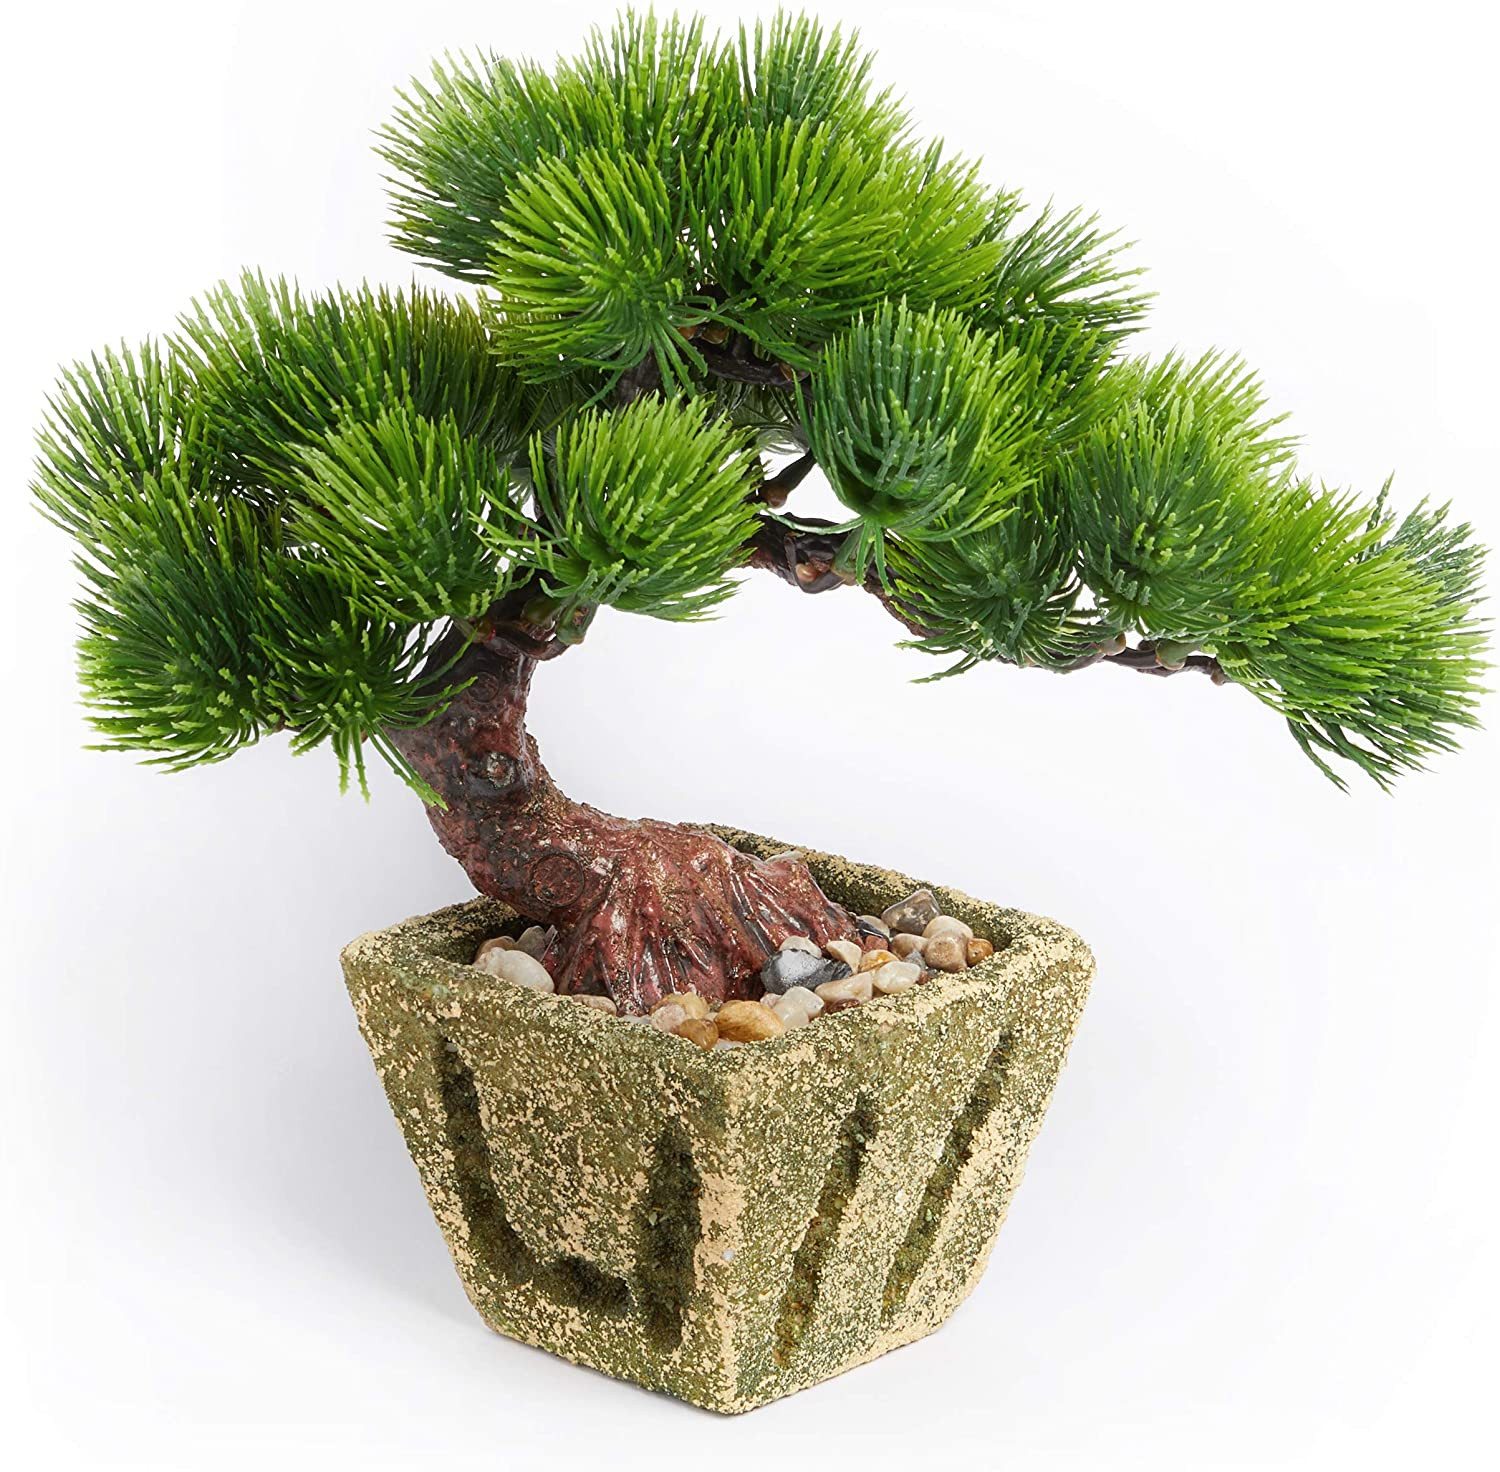 Artificial Bonsai Tree – Small Indoor & Outdoor Artificial Plant Decoration, Japanese Style Bonsai Tree for Home, Office and Garden Décor, by Golden Forest